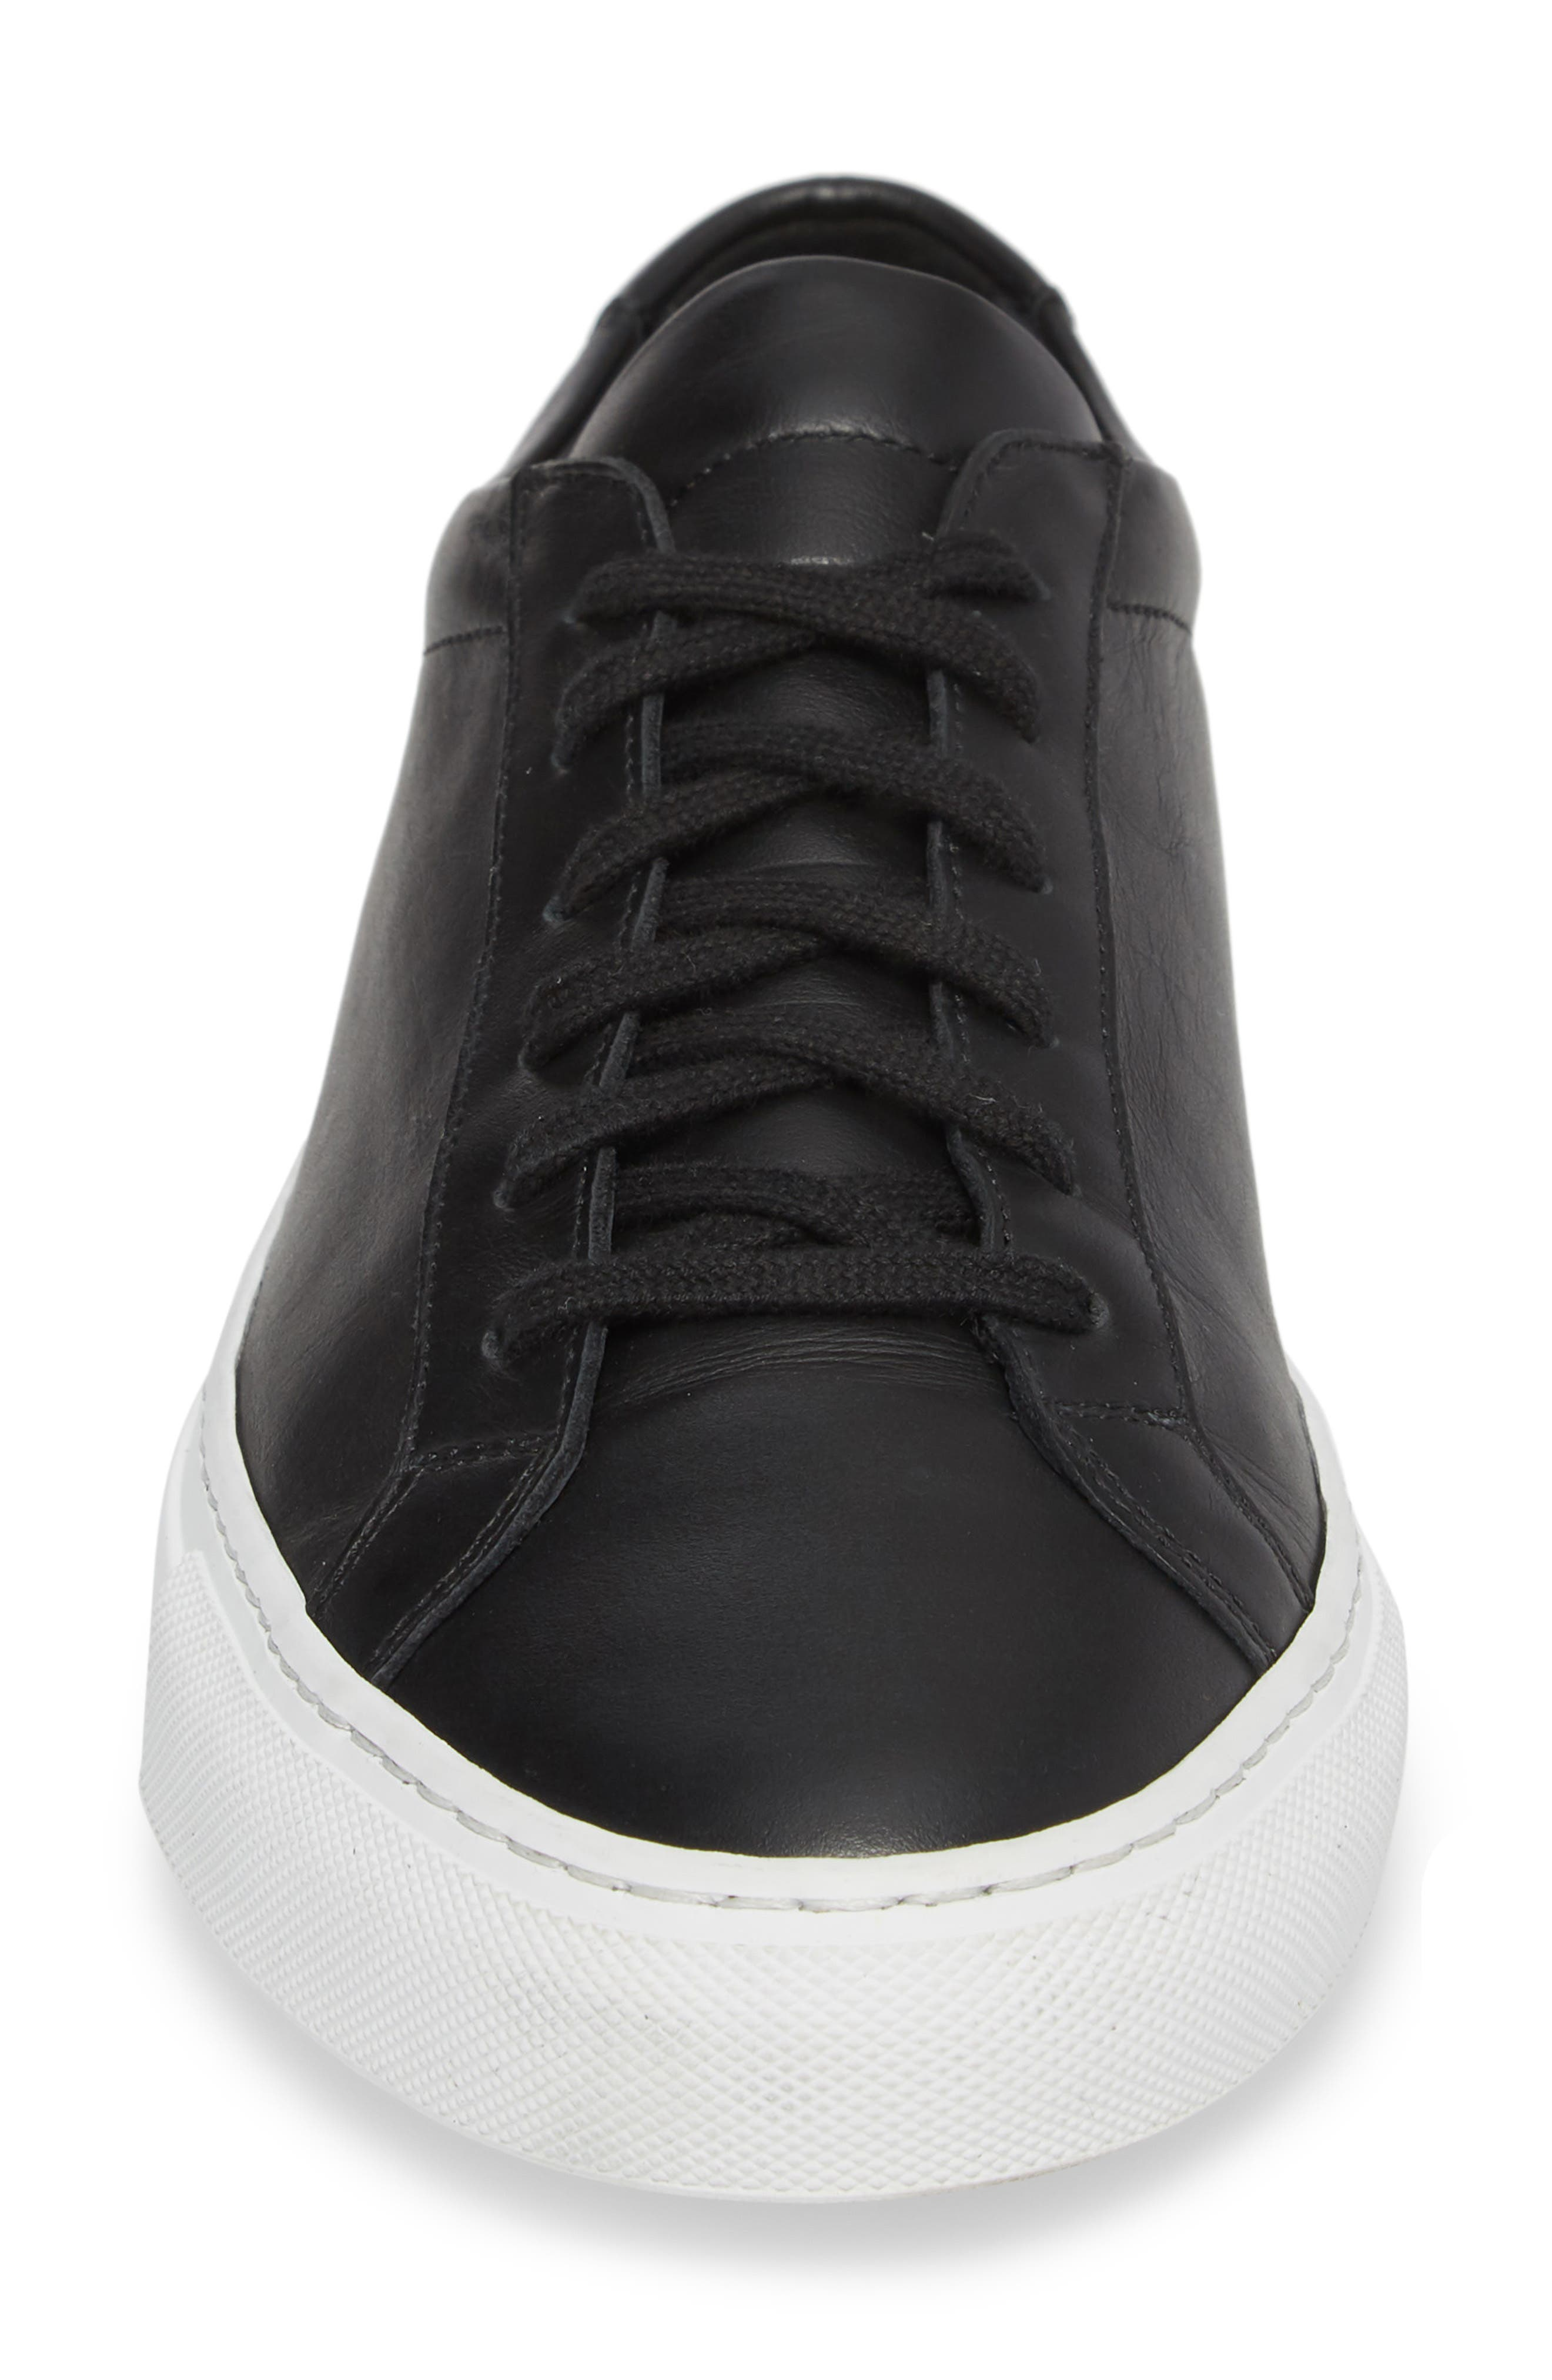 COMMON PROJECTS, Achilles Low Sneaker, Alternate thumbnail 4, color, BLACK LEATHER